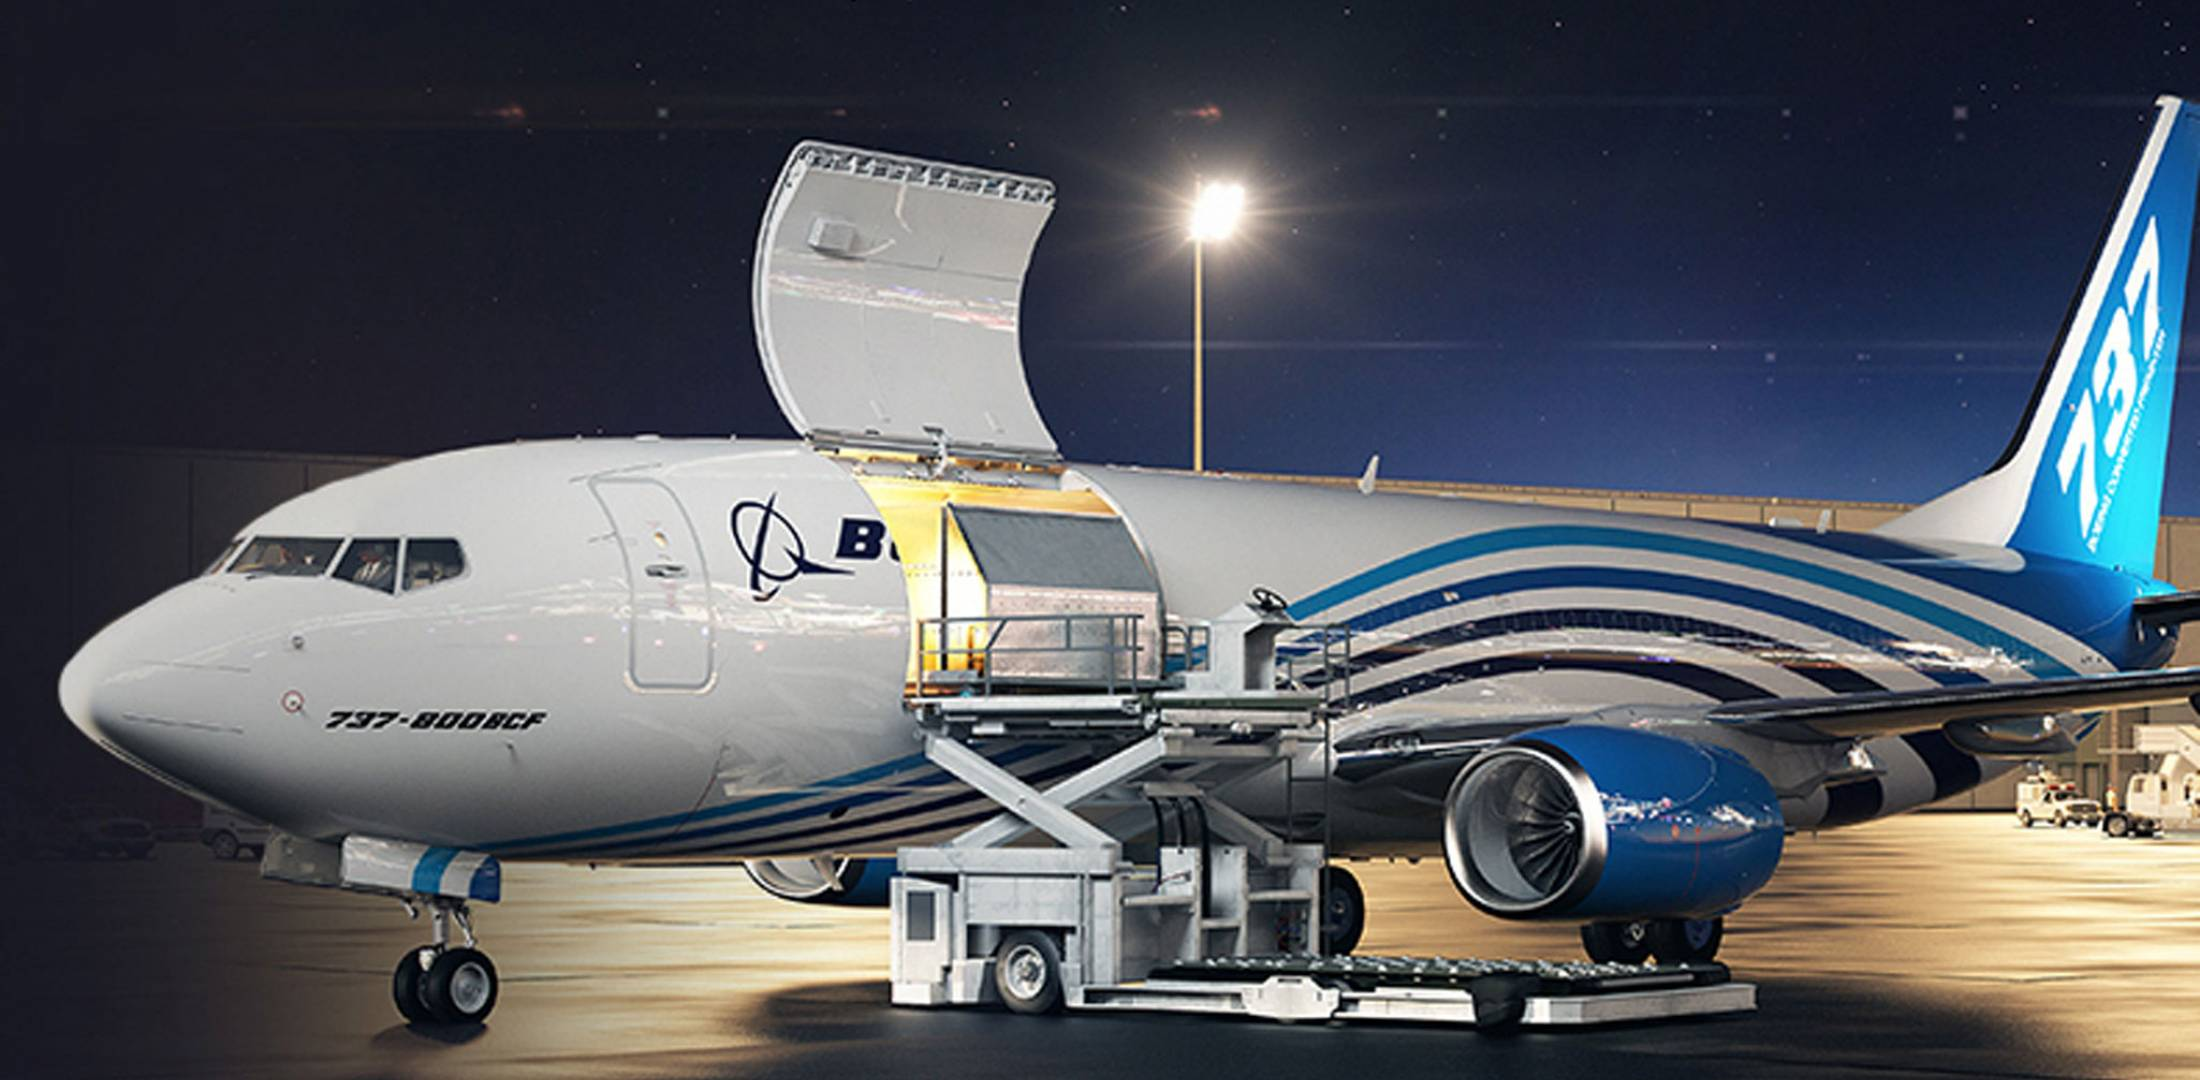 fb0b29d192 Growing numbers of mid-life Boeing 737-800s will become available for  freighter conversion at suitable market values in the 2019-2020 timeframe